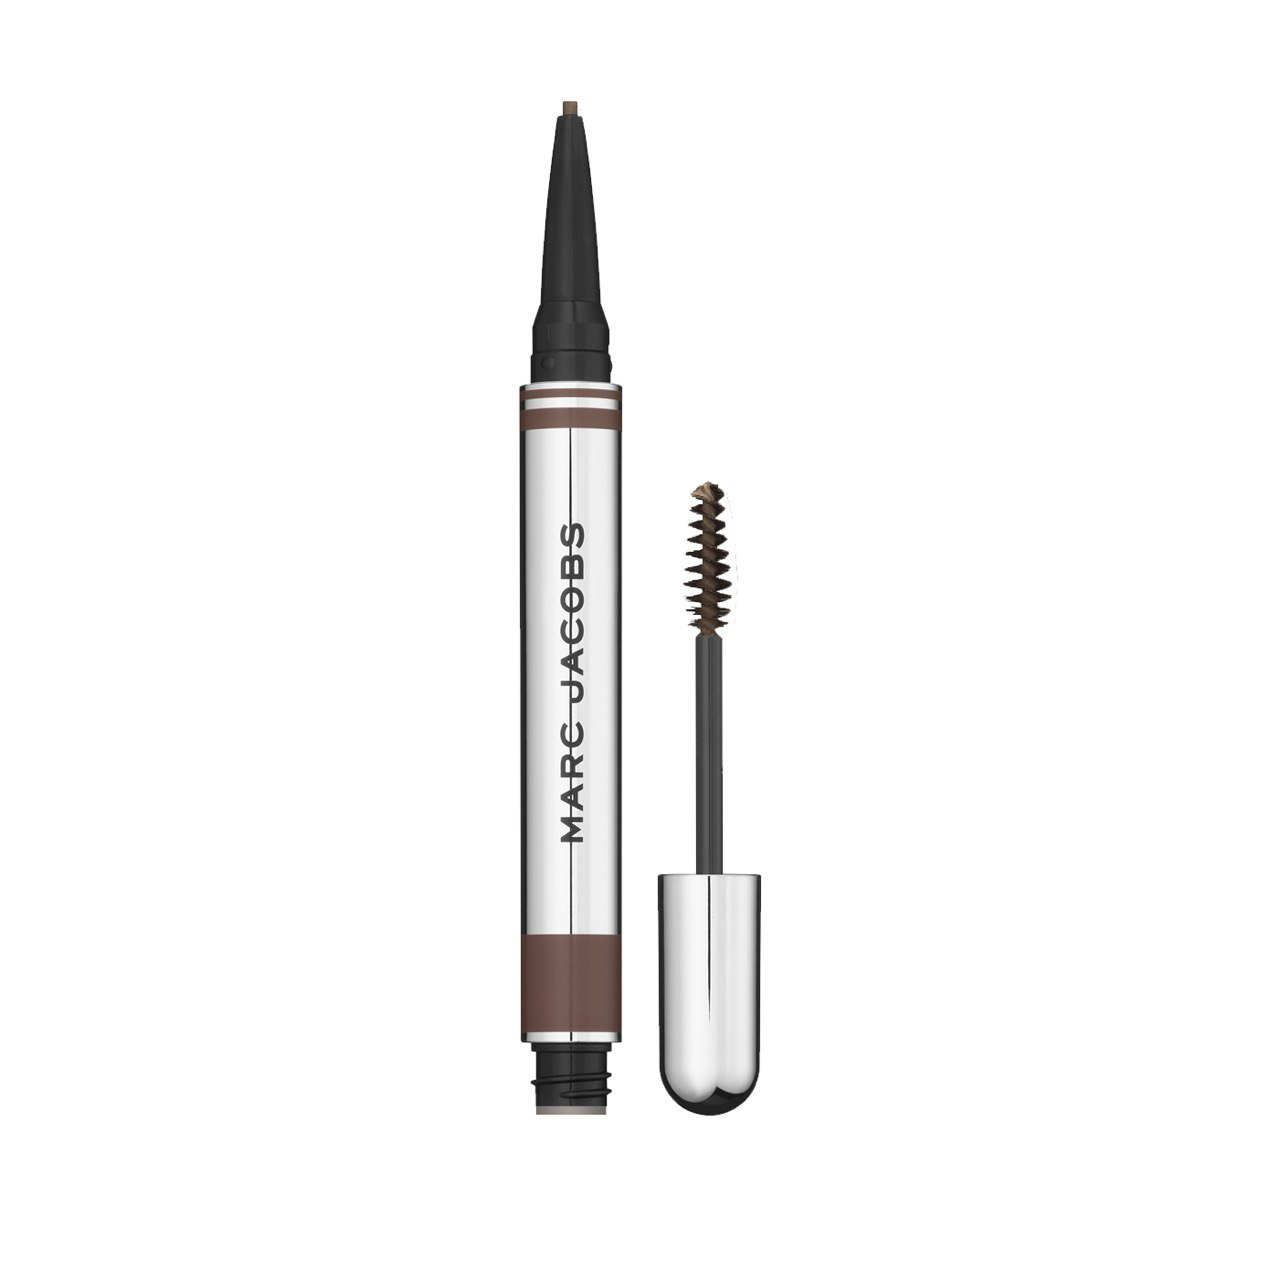 Marc Jacobs Beauty Brow Wow Duo, $59